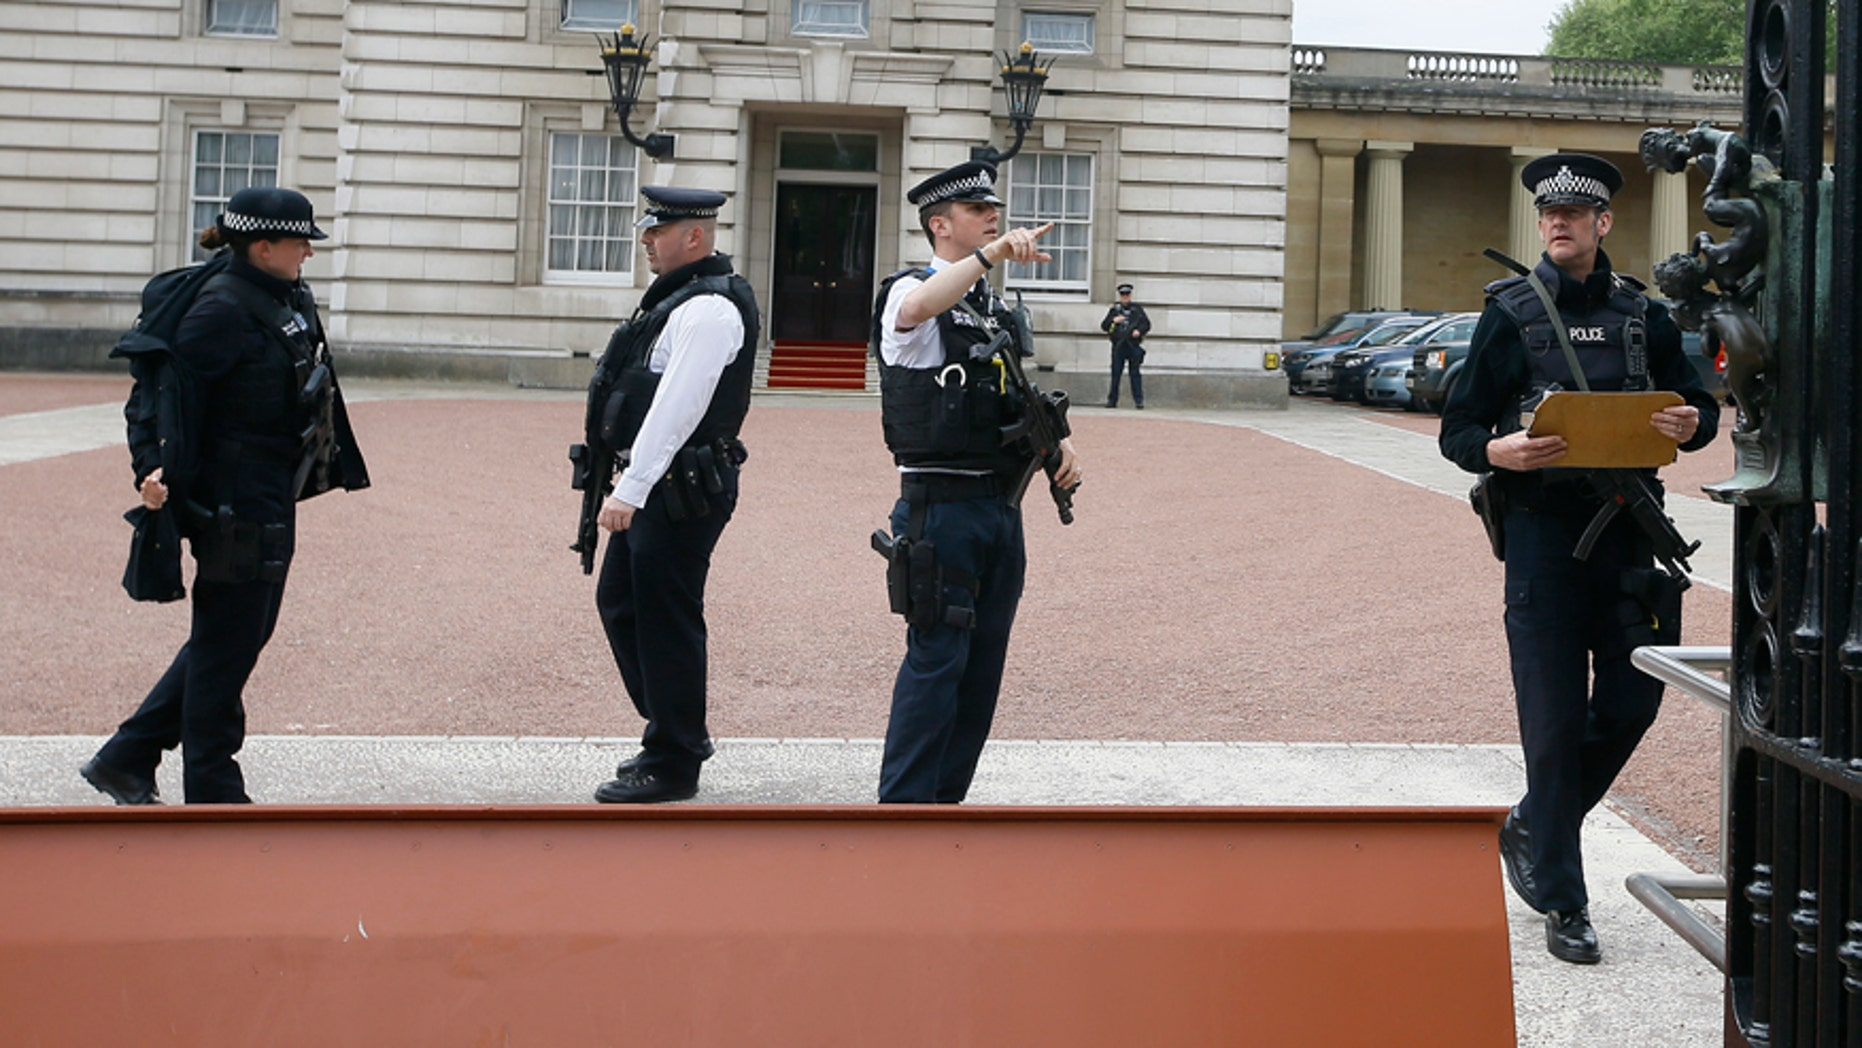 May 19, 2016: Armed police officers work at the main gate of Buckingham Palace in London.